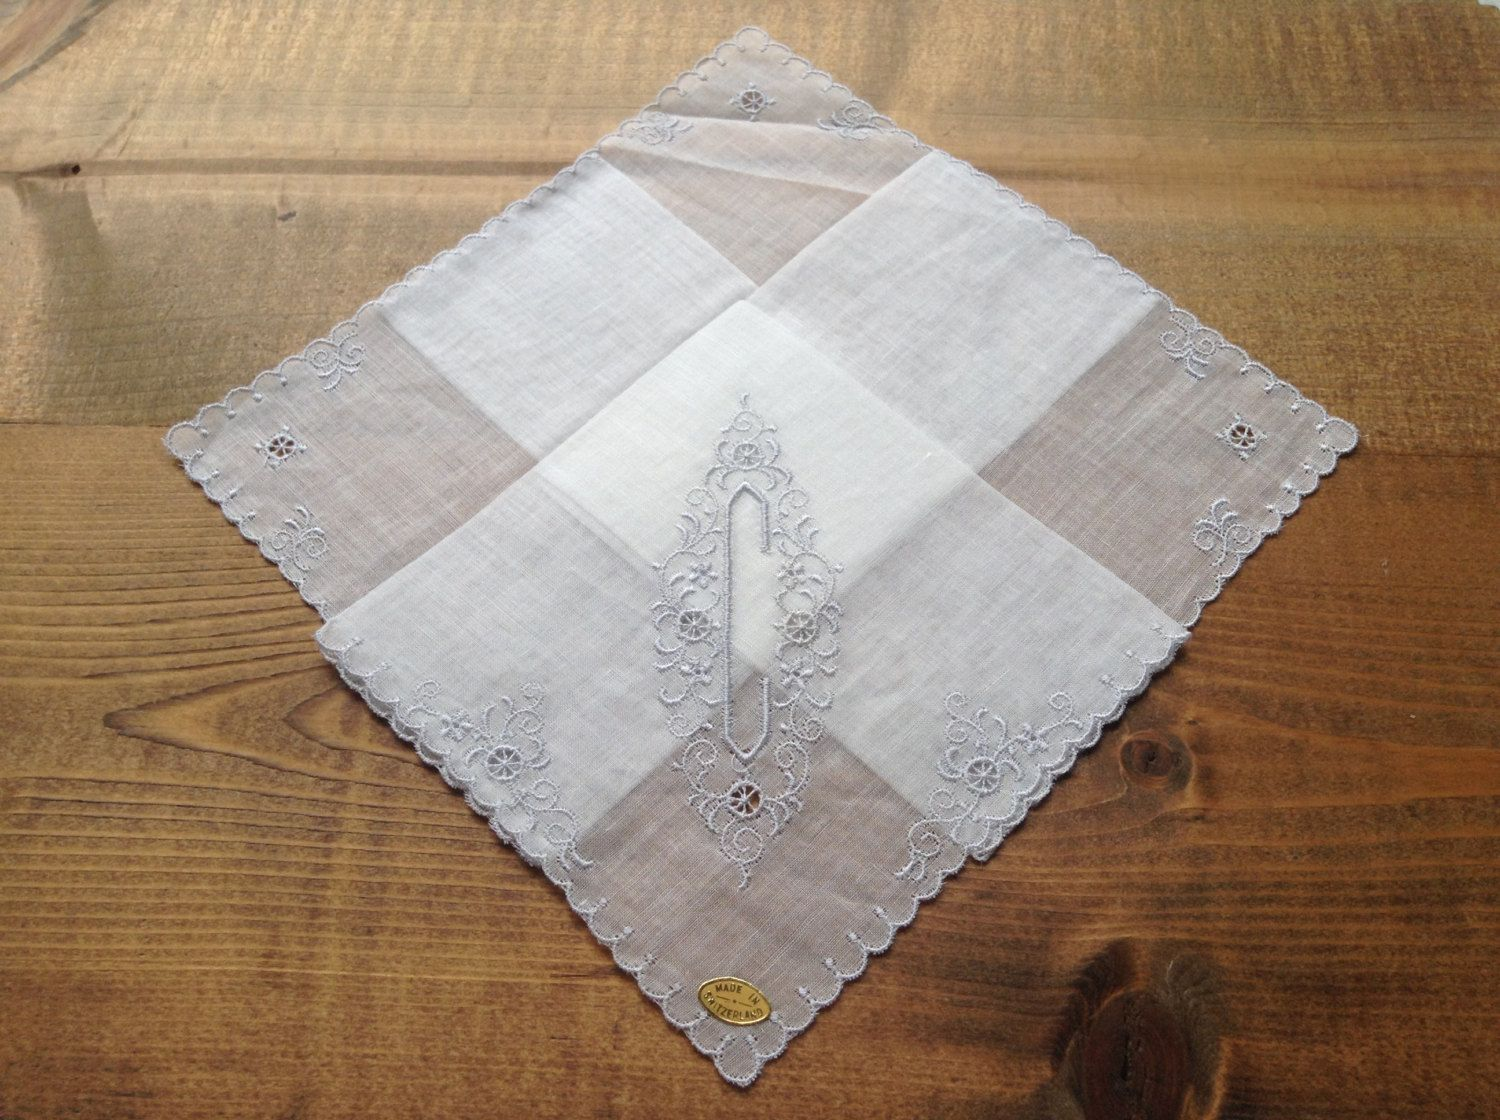 Beautiful white lace embroidered wedding hanky with monogram initial C by Yebisu on Etsy